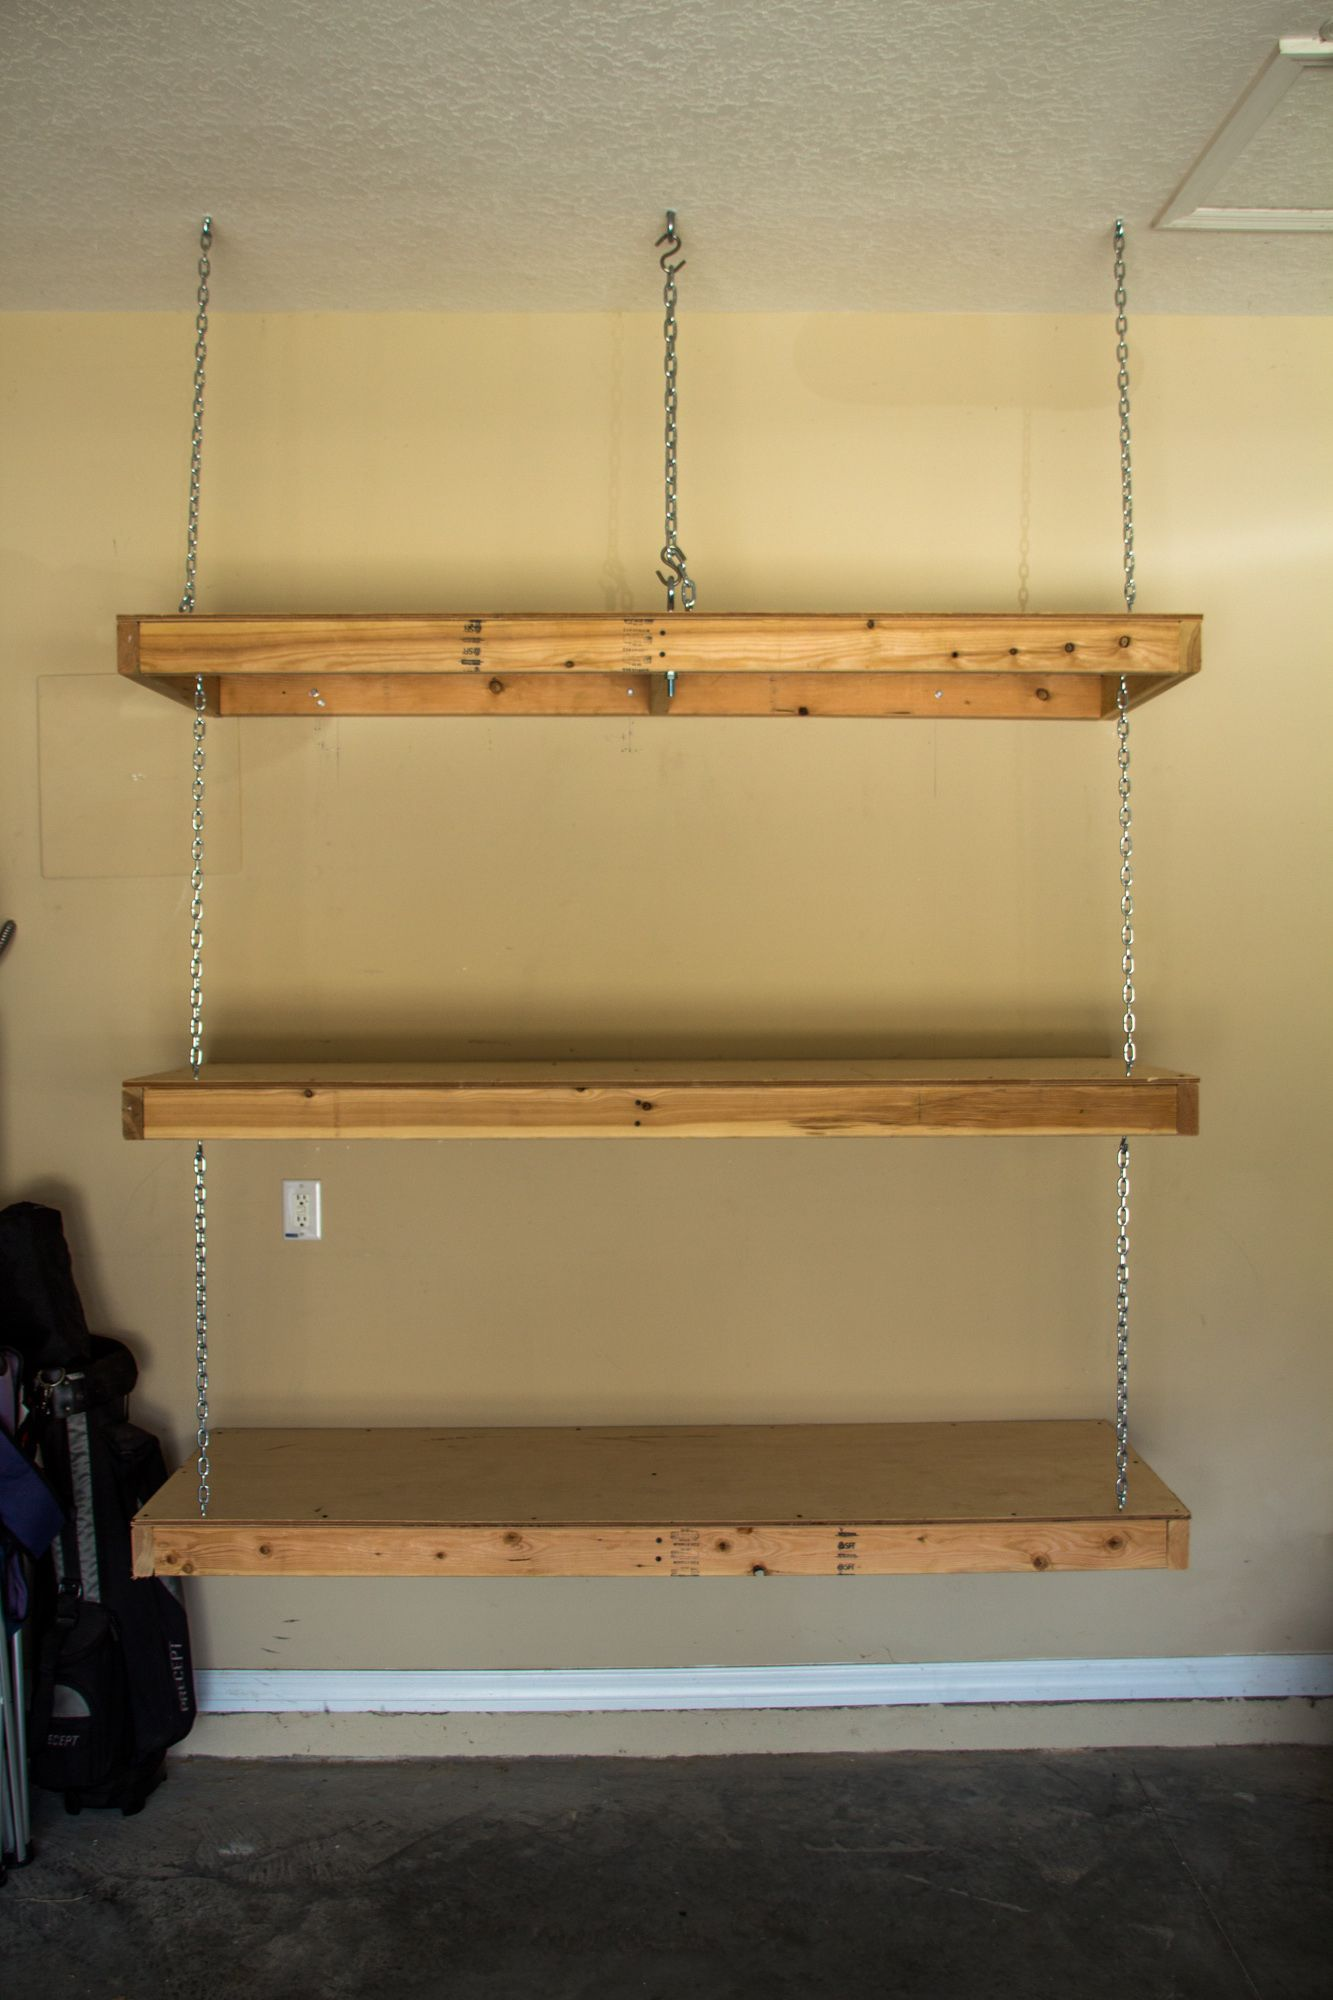 Diy Garage Storage Ceiling, How To Hang Things From Garage Ceiling